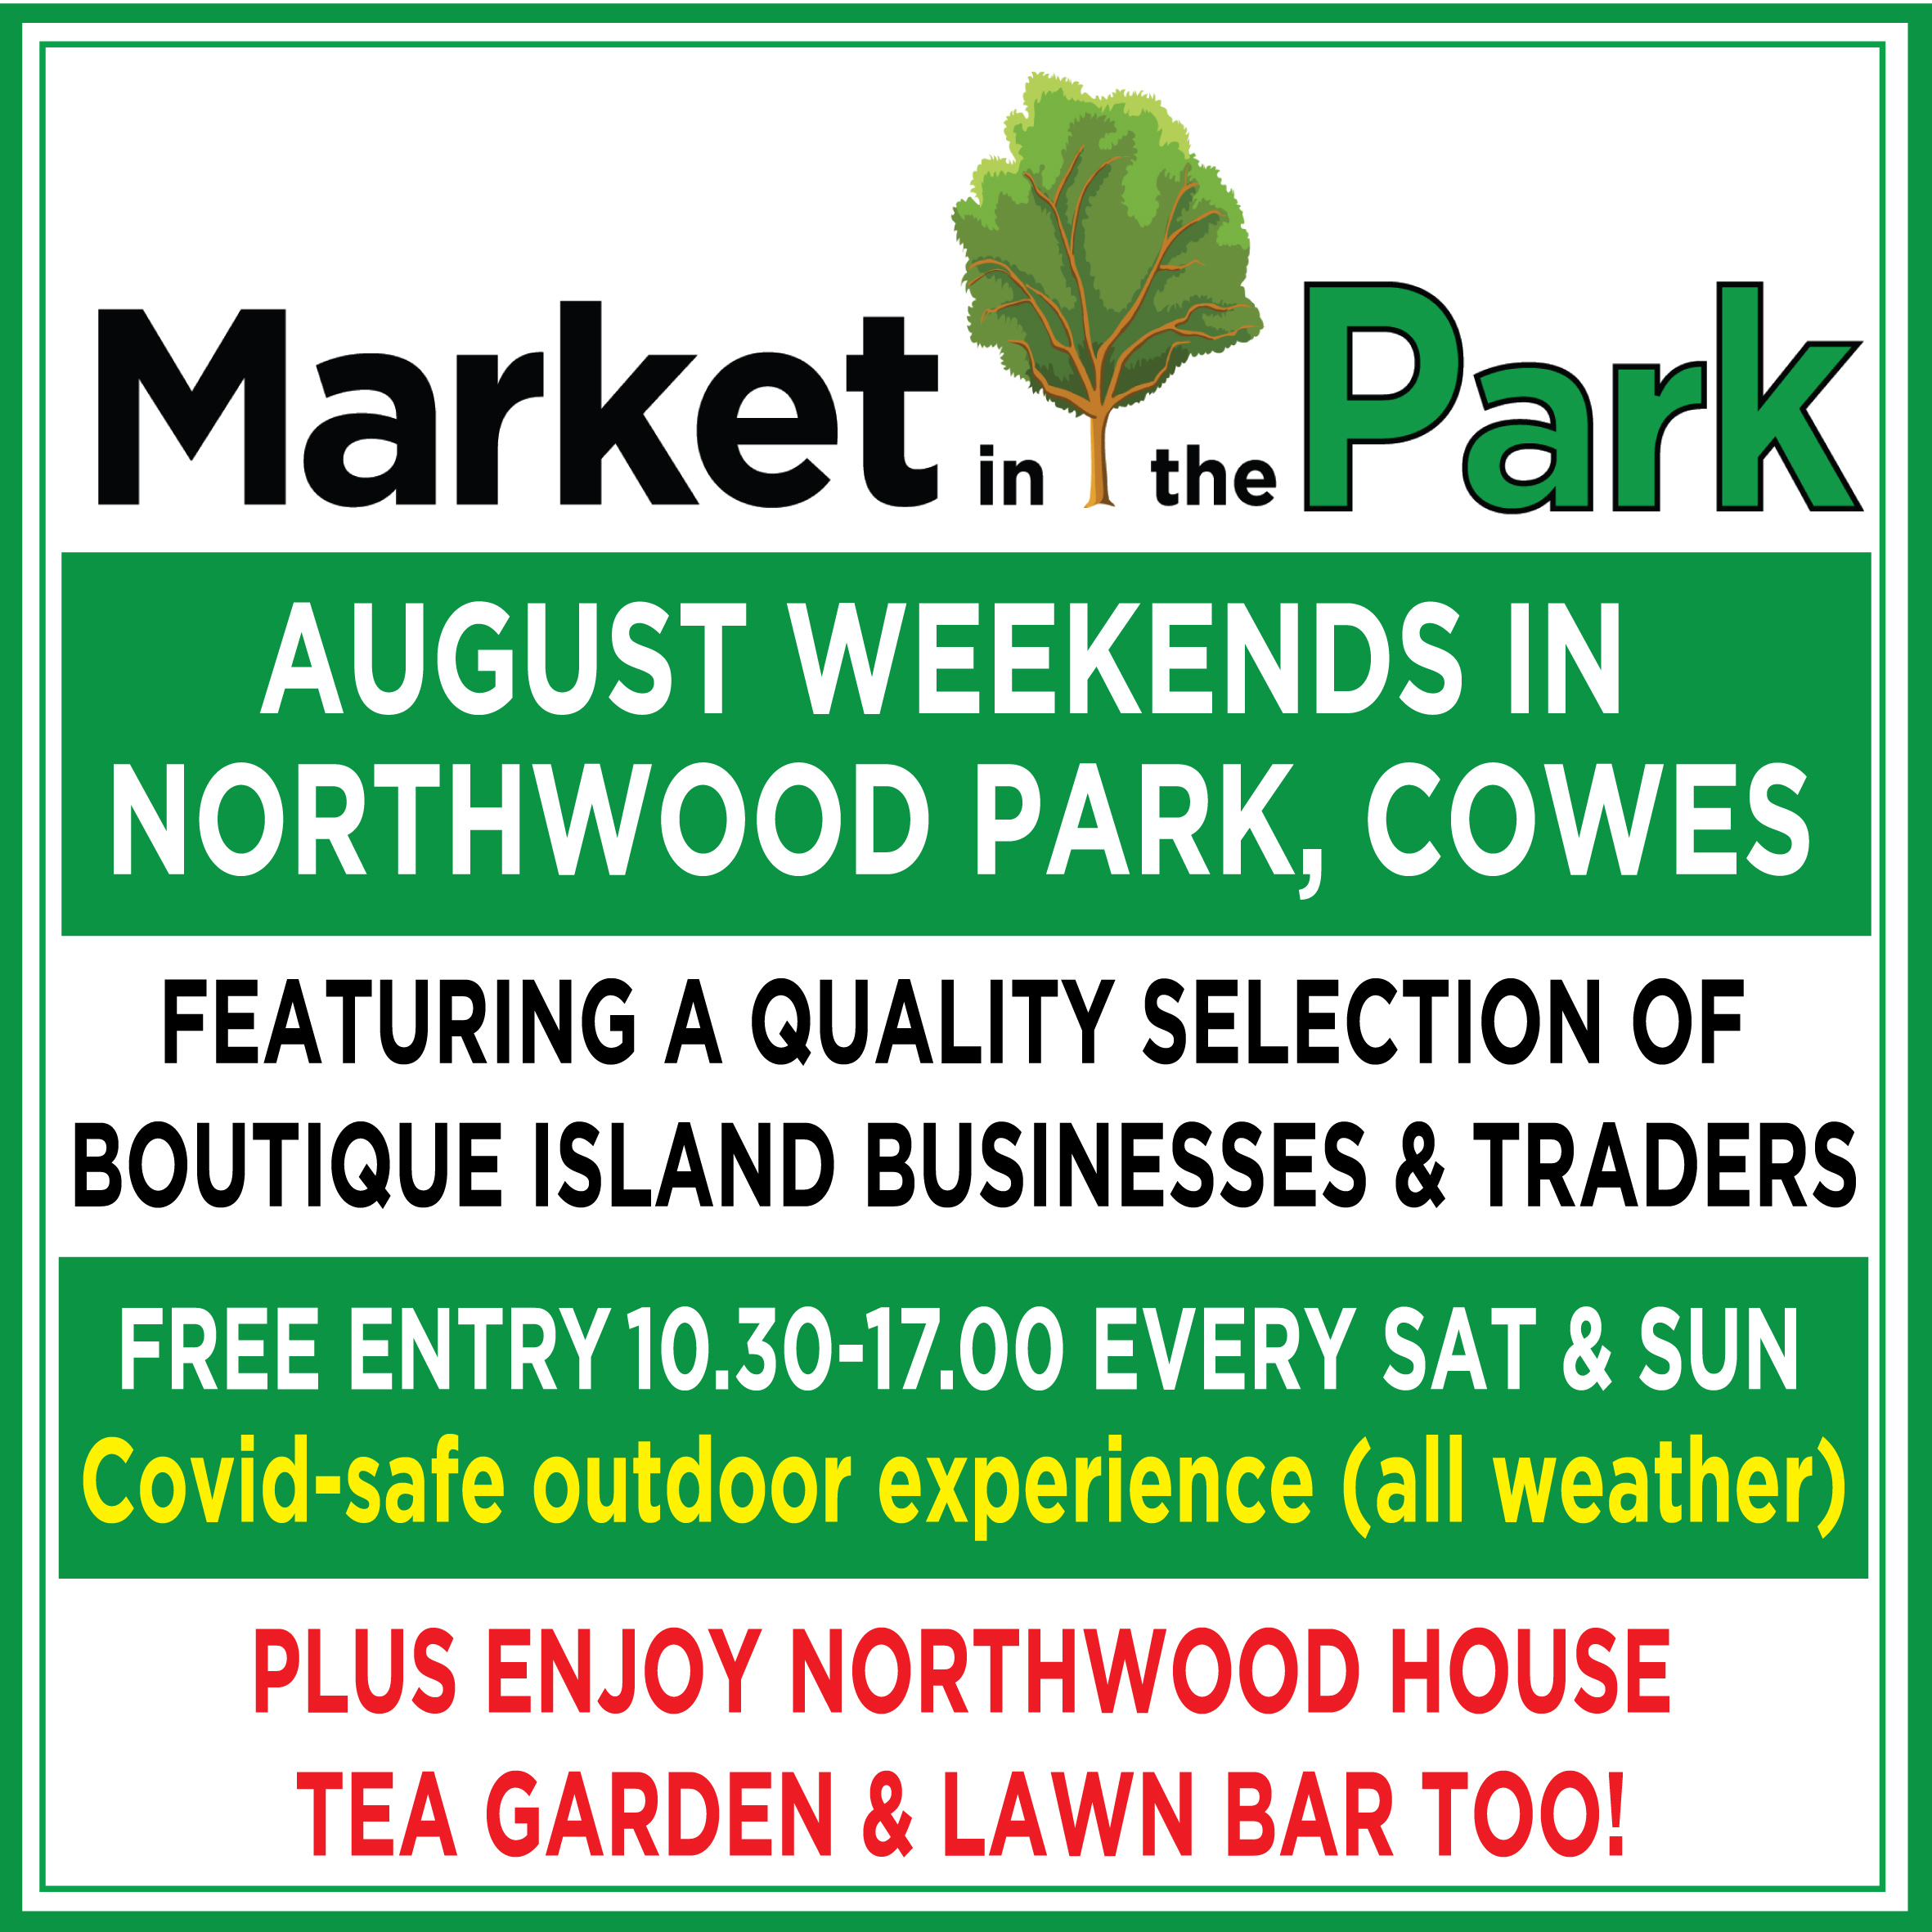 Market in the Park- August Weekends